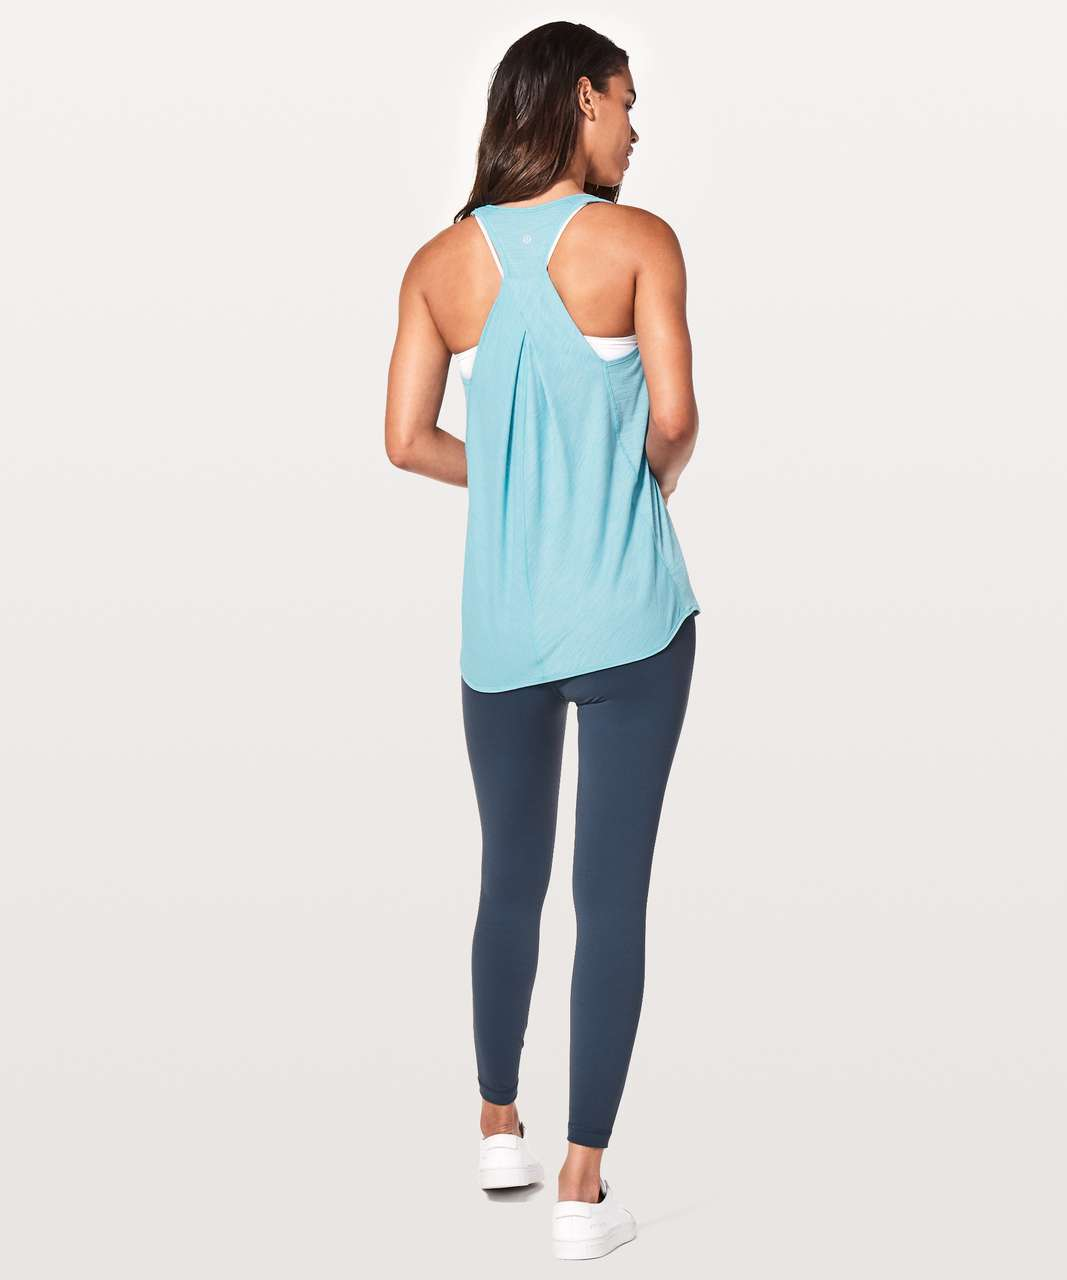 Lululemon Essential Tank - Heathered Eton Blue